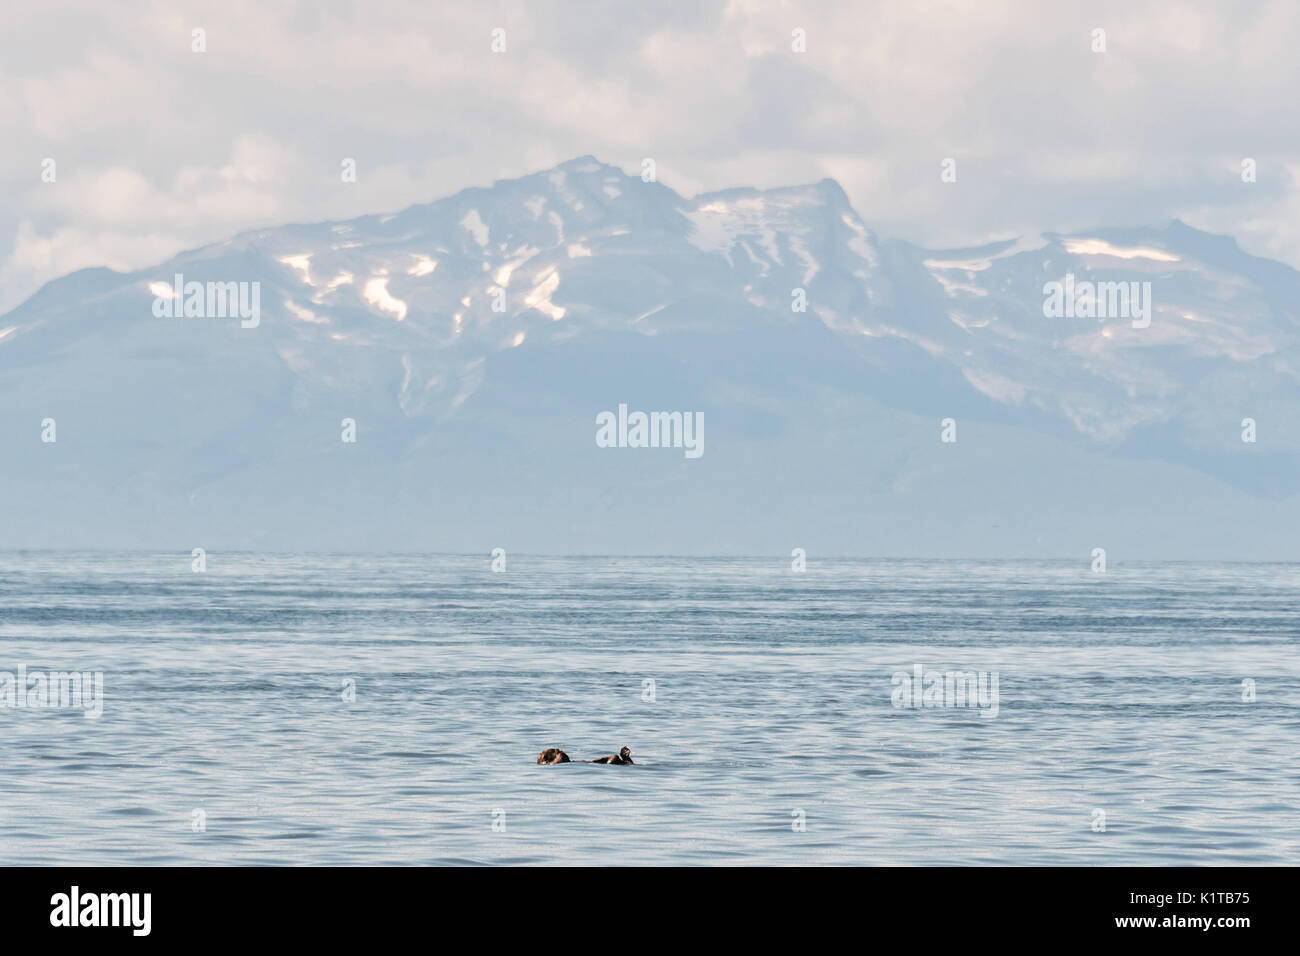 A sleeping sea otter floats down the Cook Inlet past the Chigmit Mountains at Anchor Point, Alaska. - Stock Image